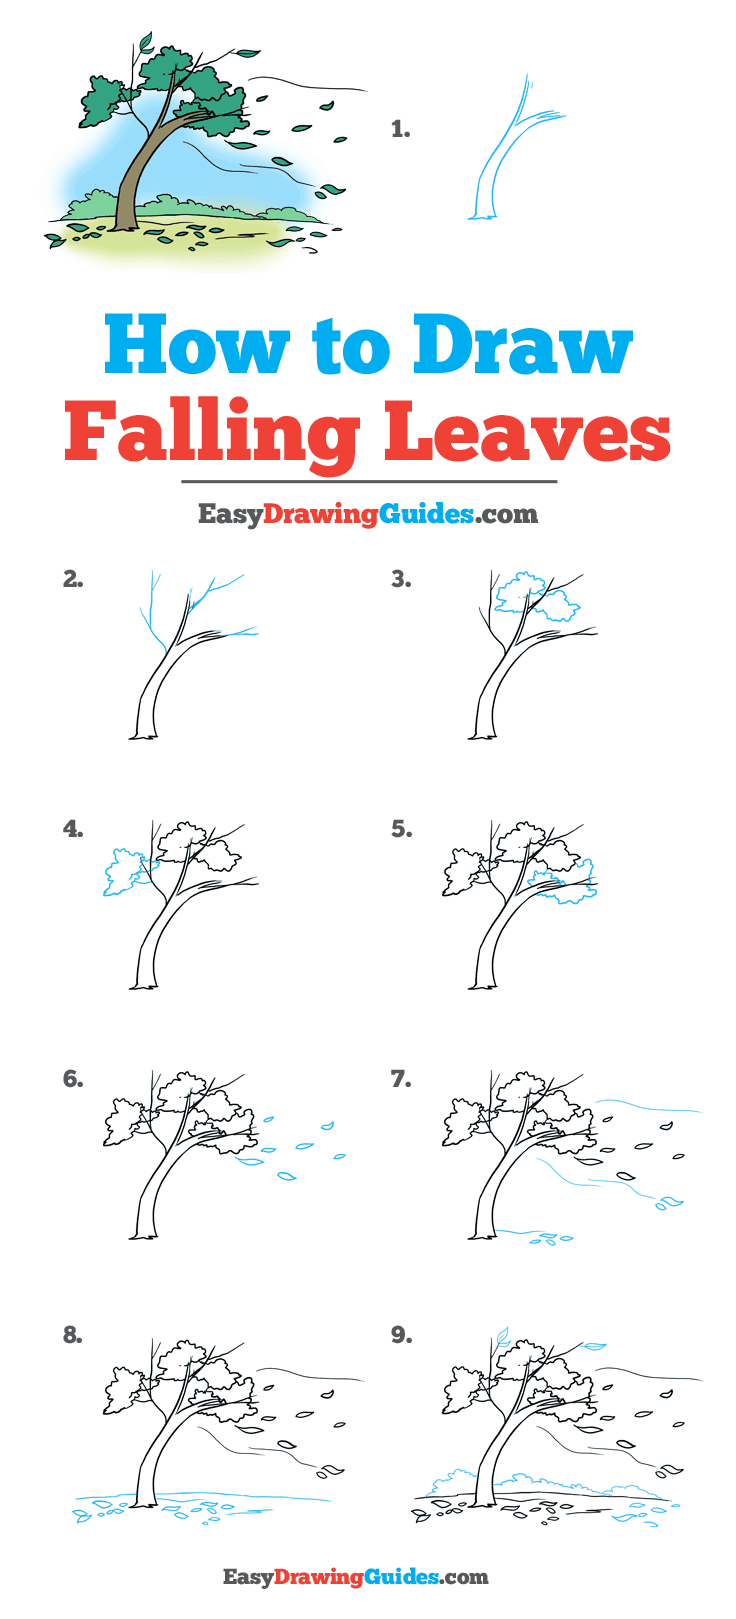 How to Draw Falling Leaves #autumnscenery